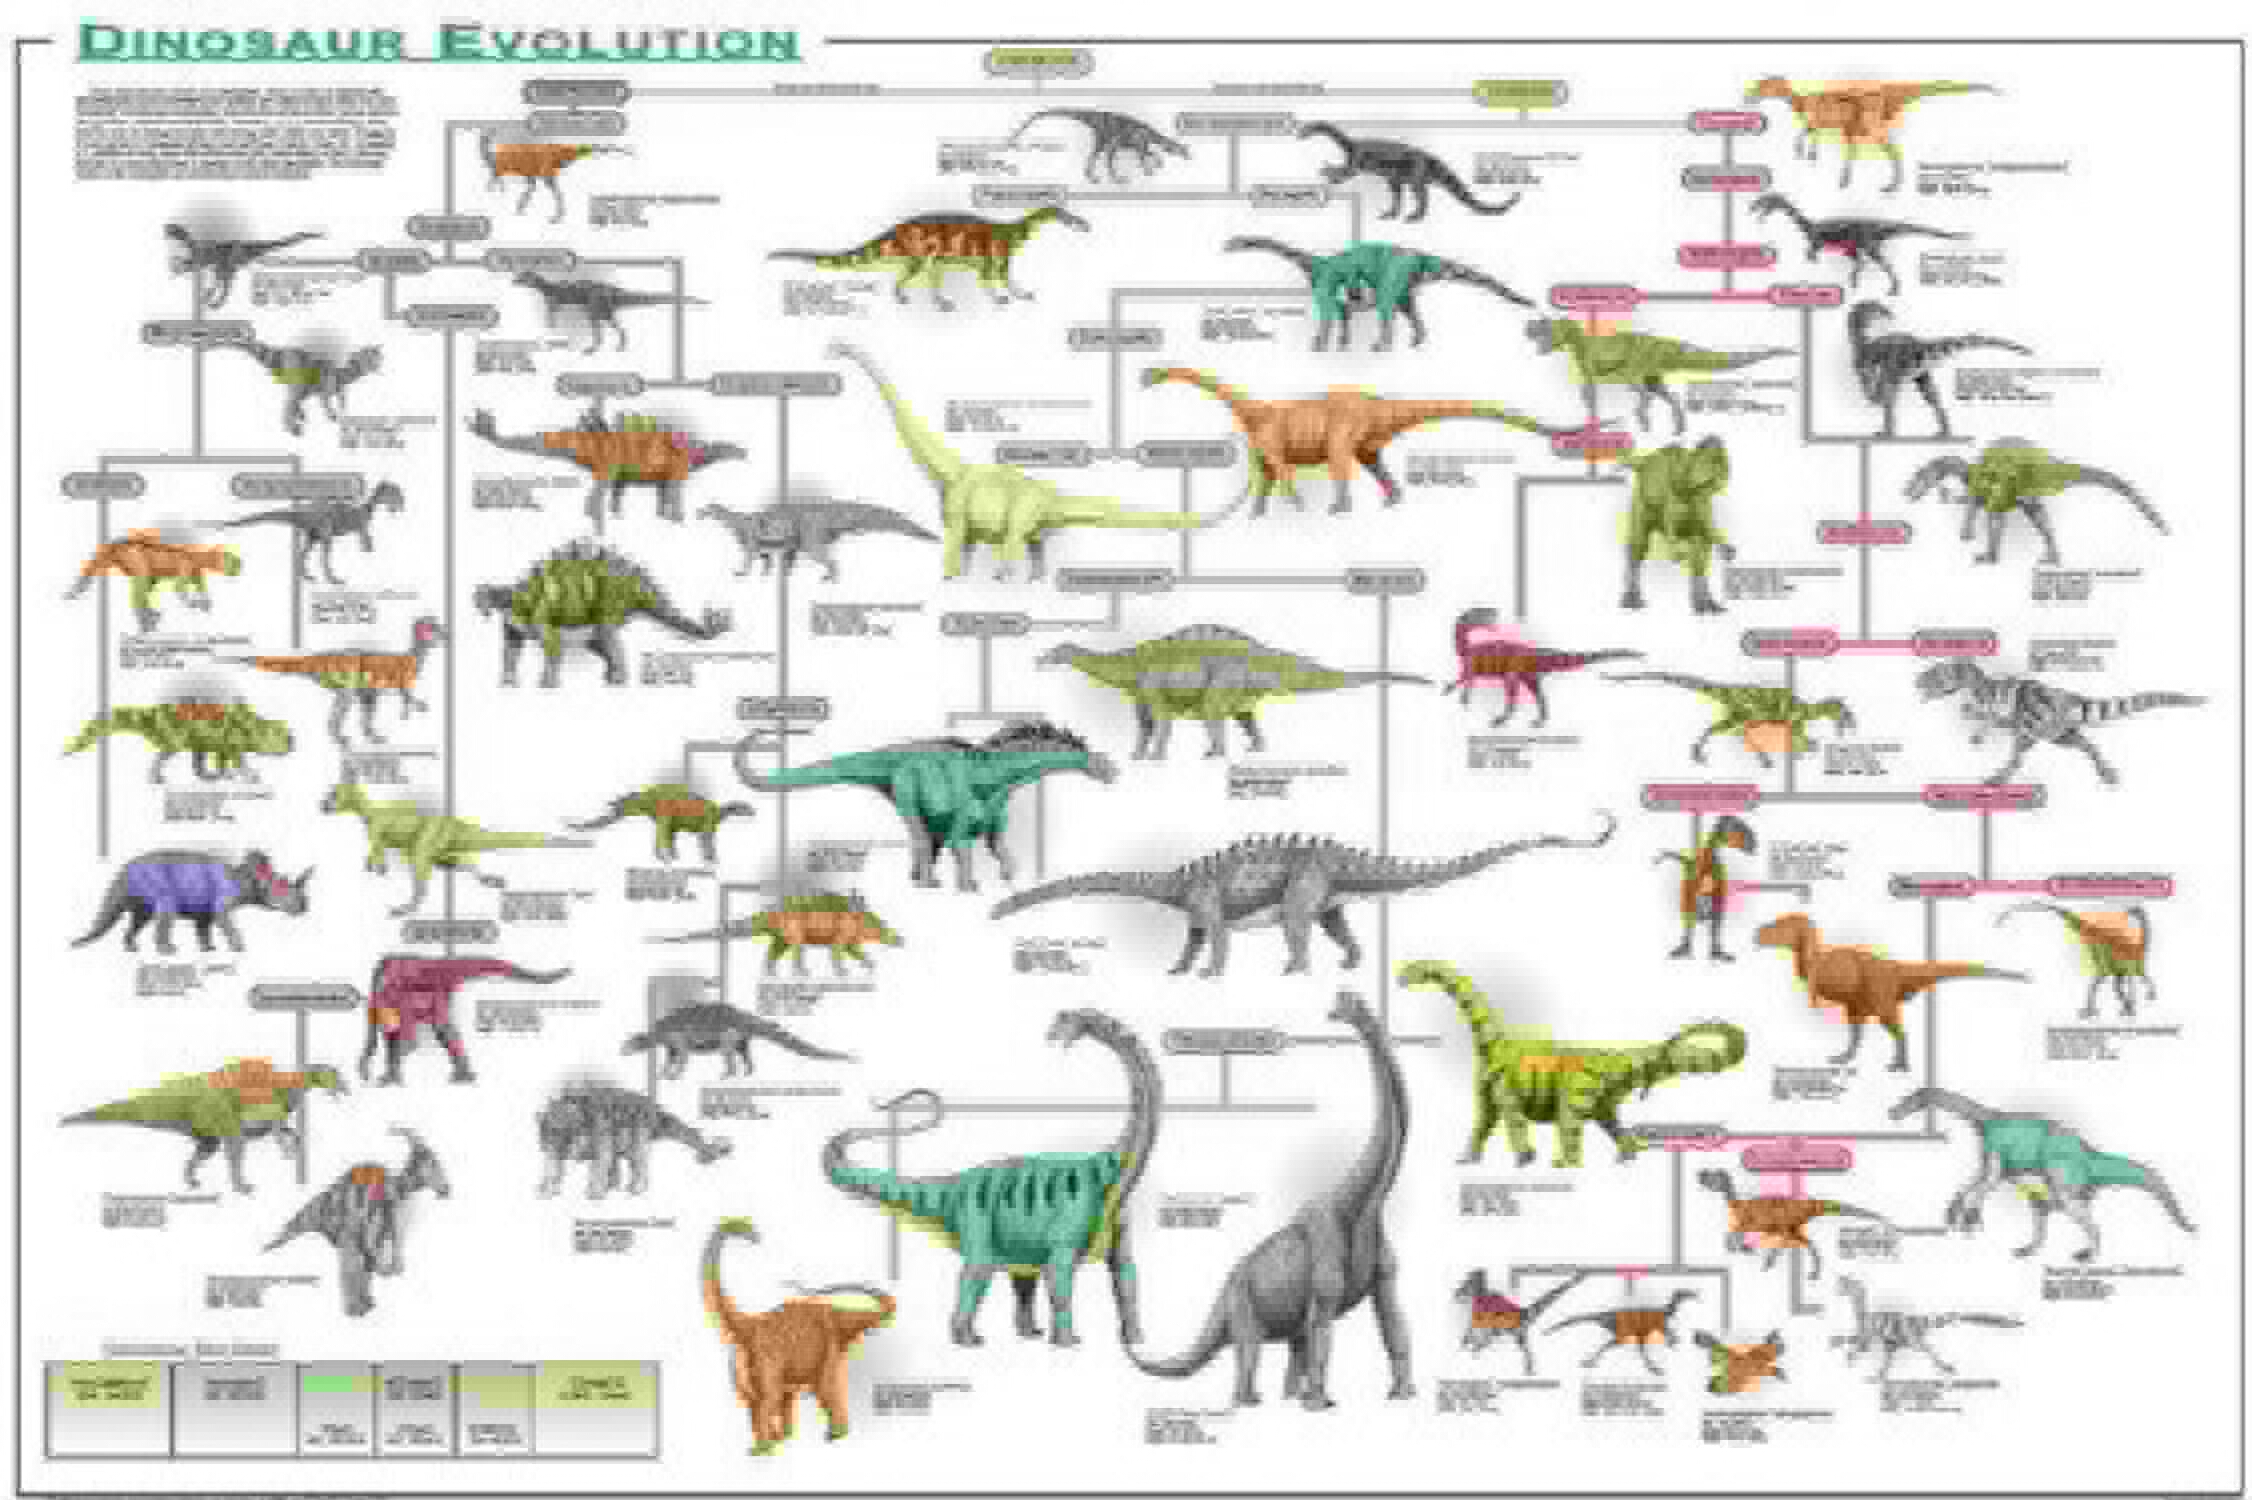 estar en gran demanda Laminated Laminated Laminated Dinosaur Evolution Educational Science Chart Poster (24x36) by Poster Revolution  a precios asequibles